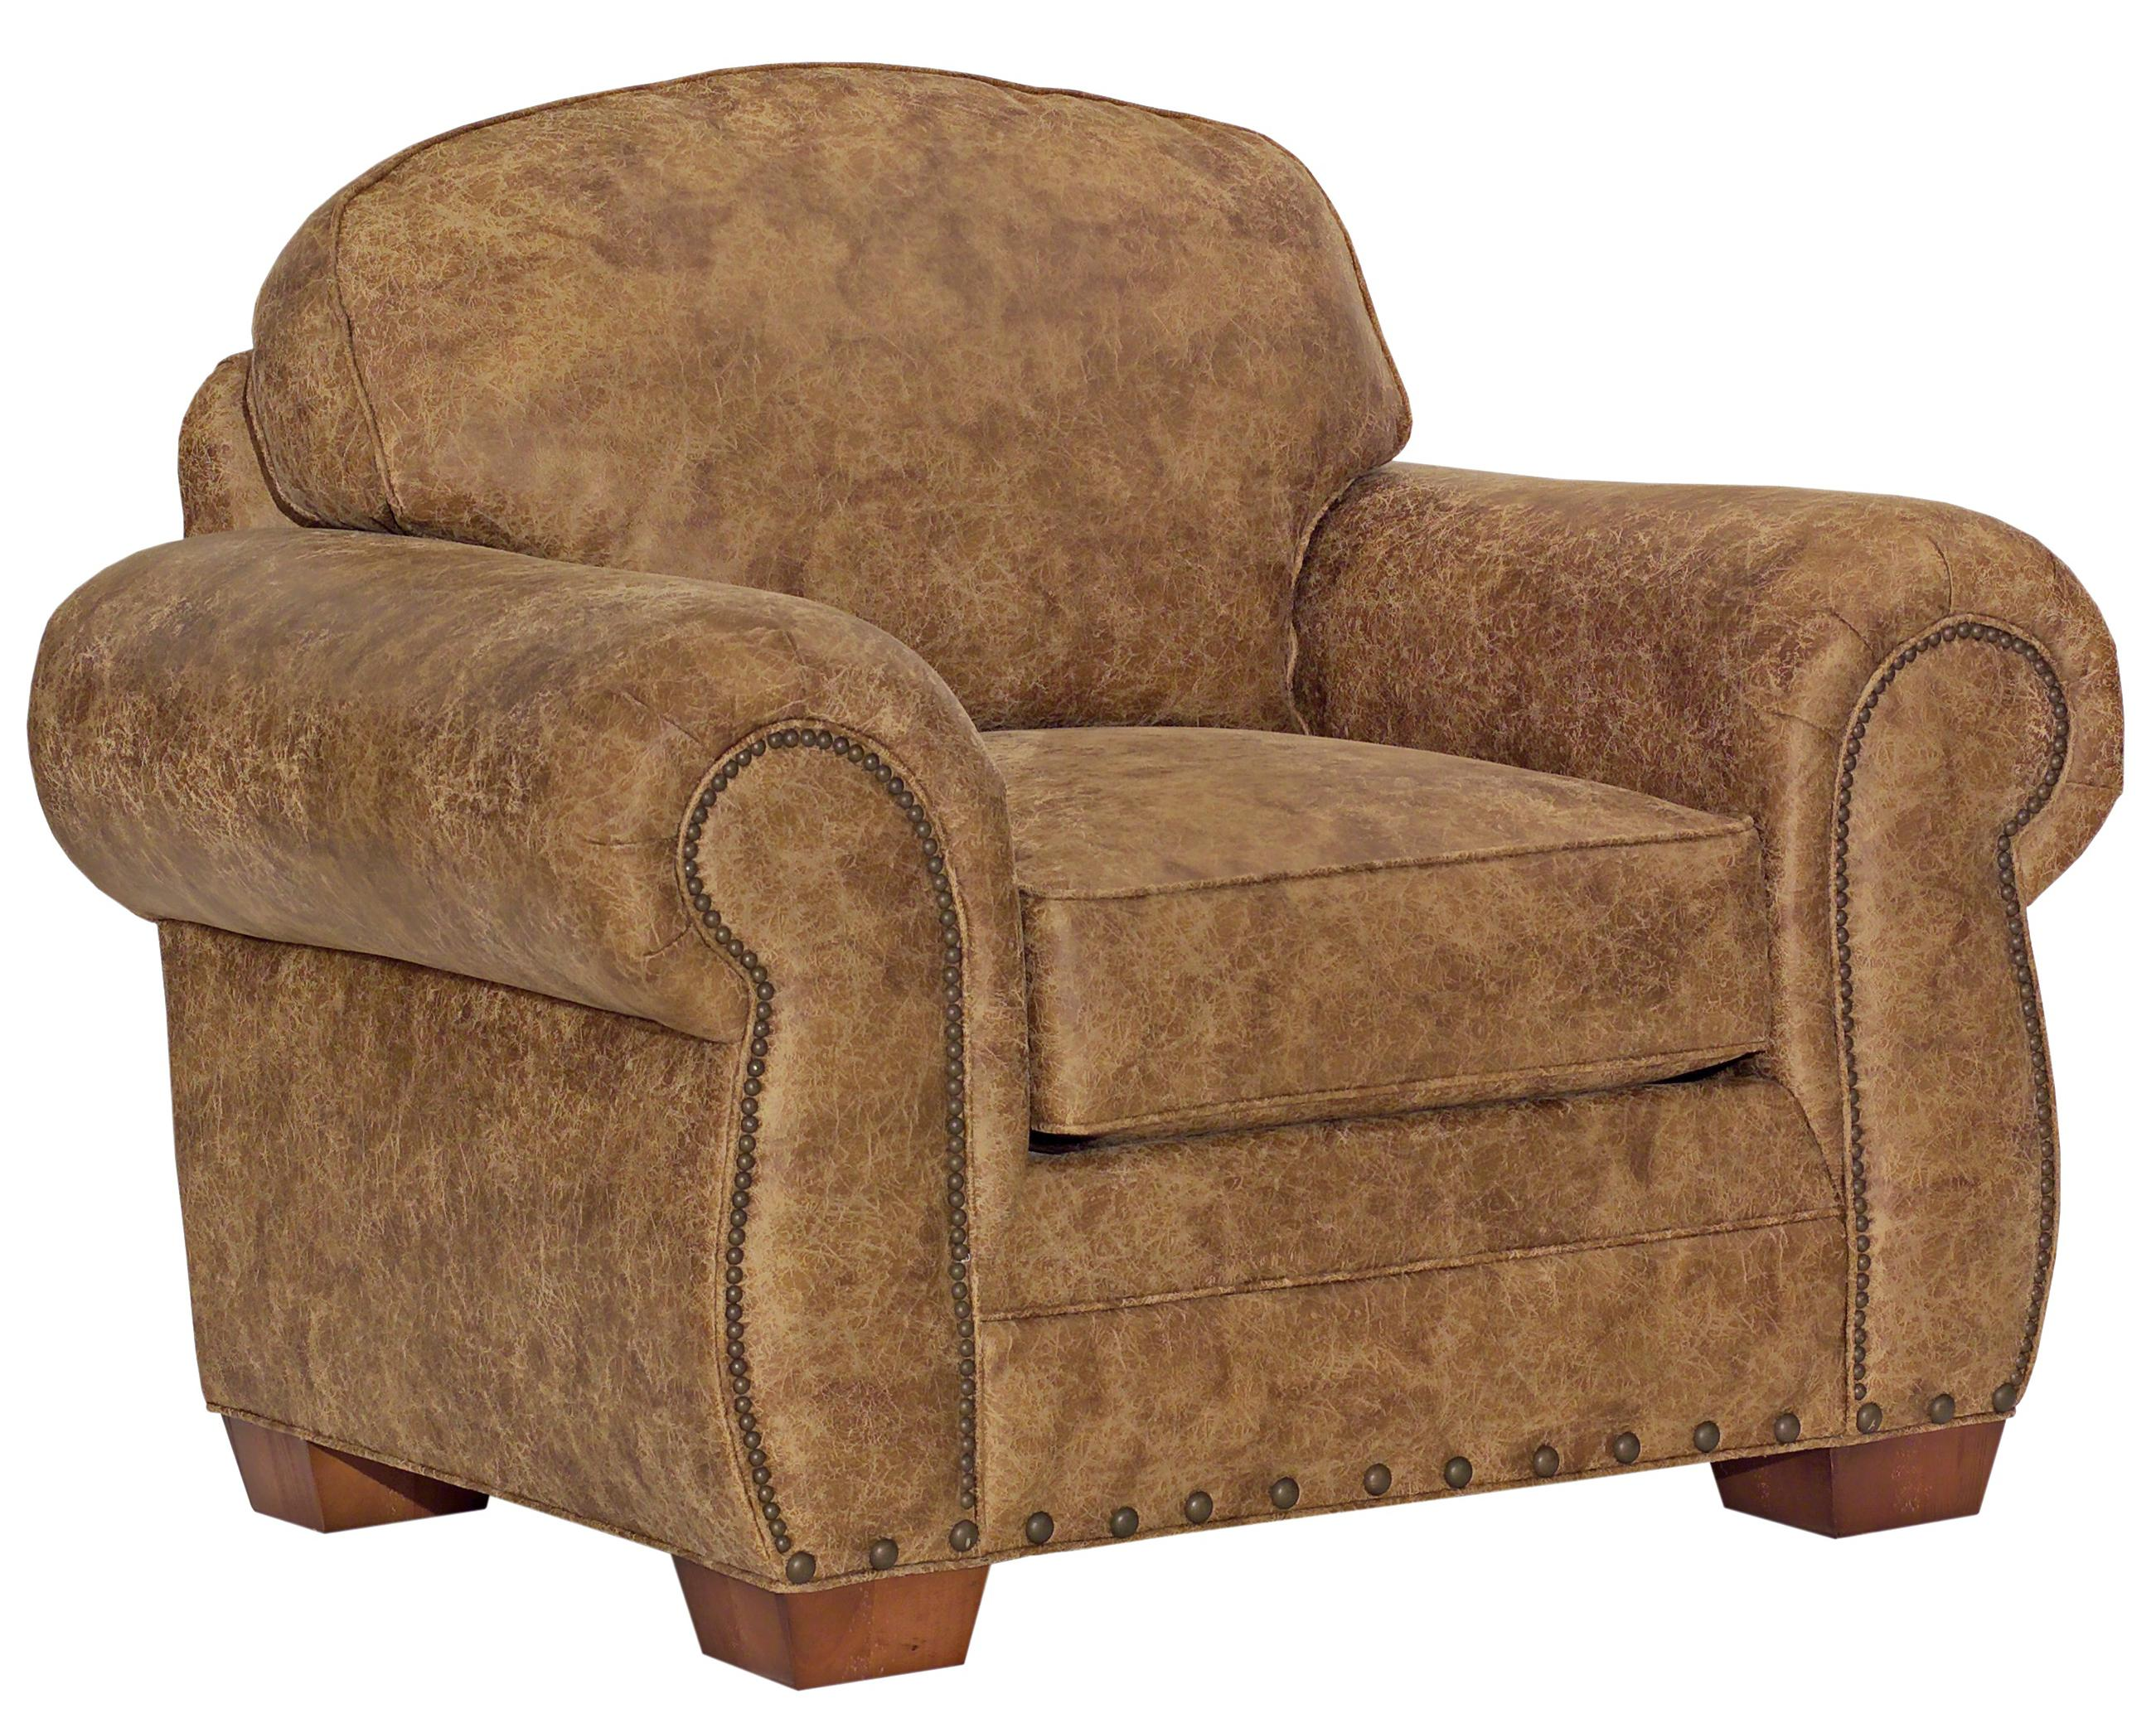 Broyhill Furniture Cambridge Casual Style Chair  - Item Number: 5054-0